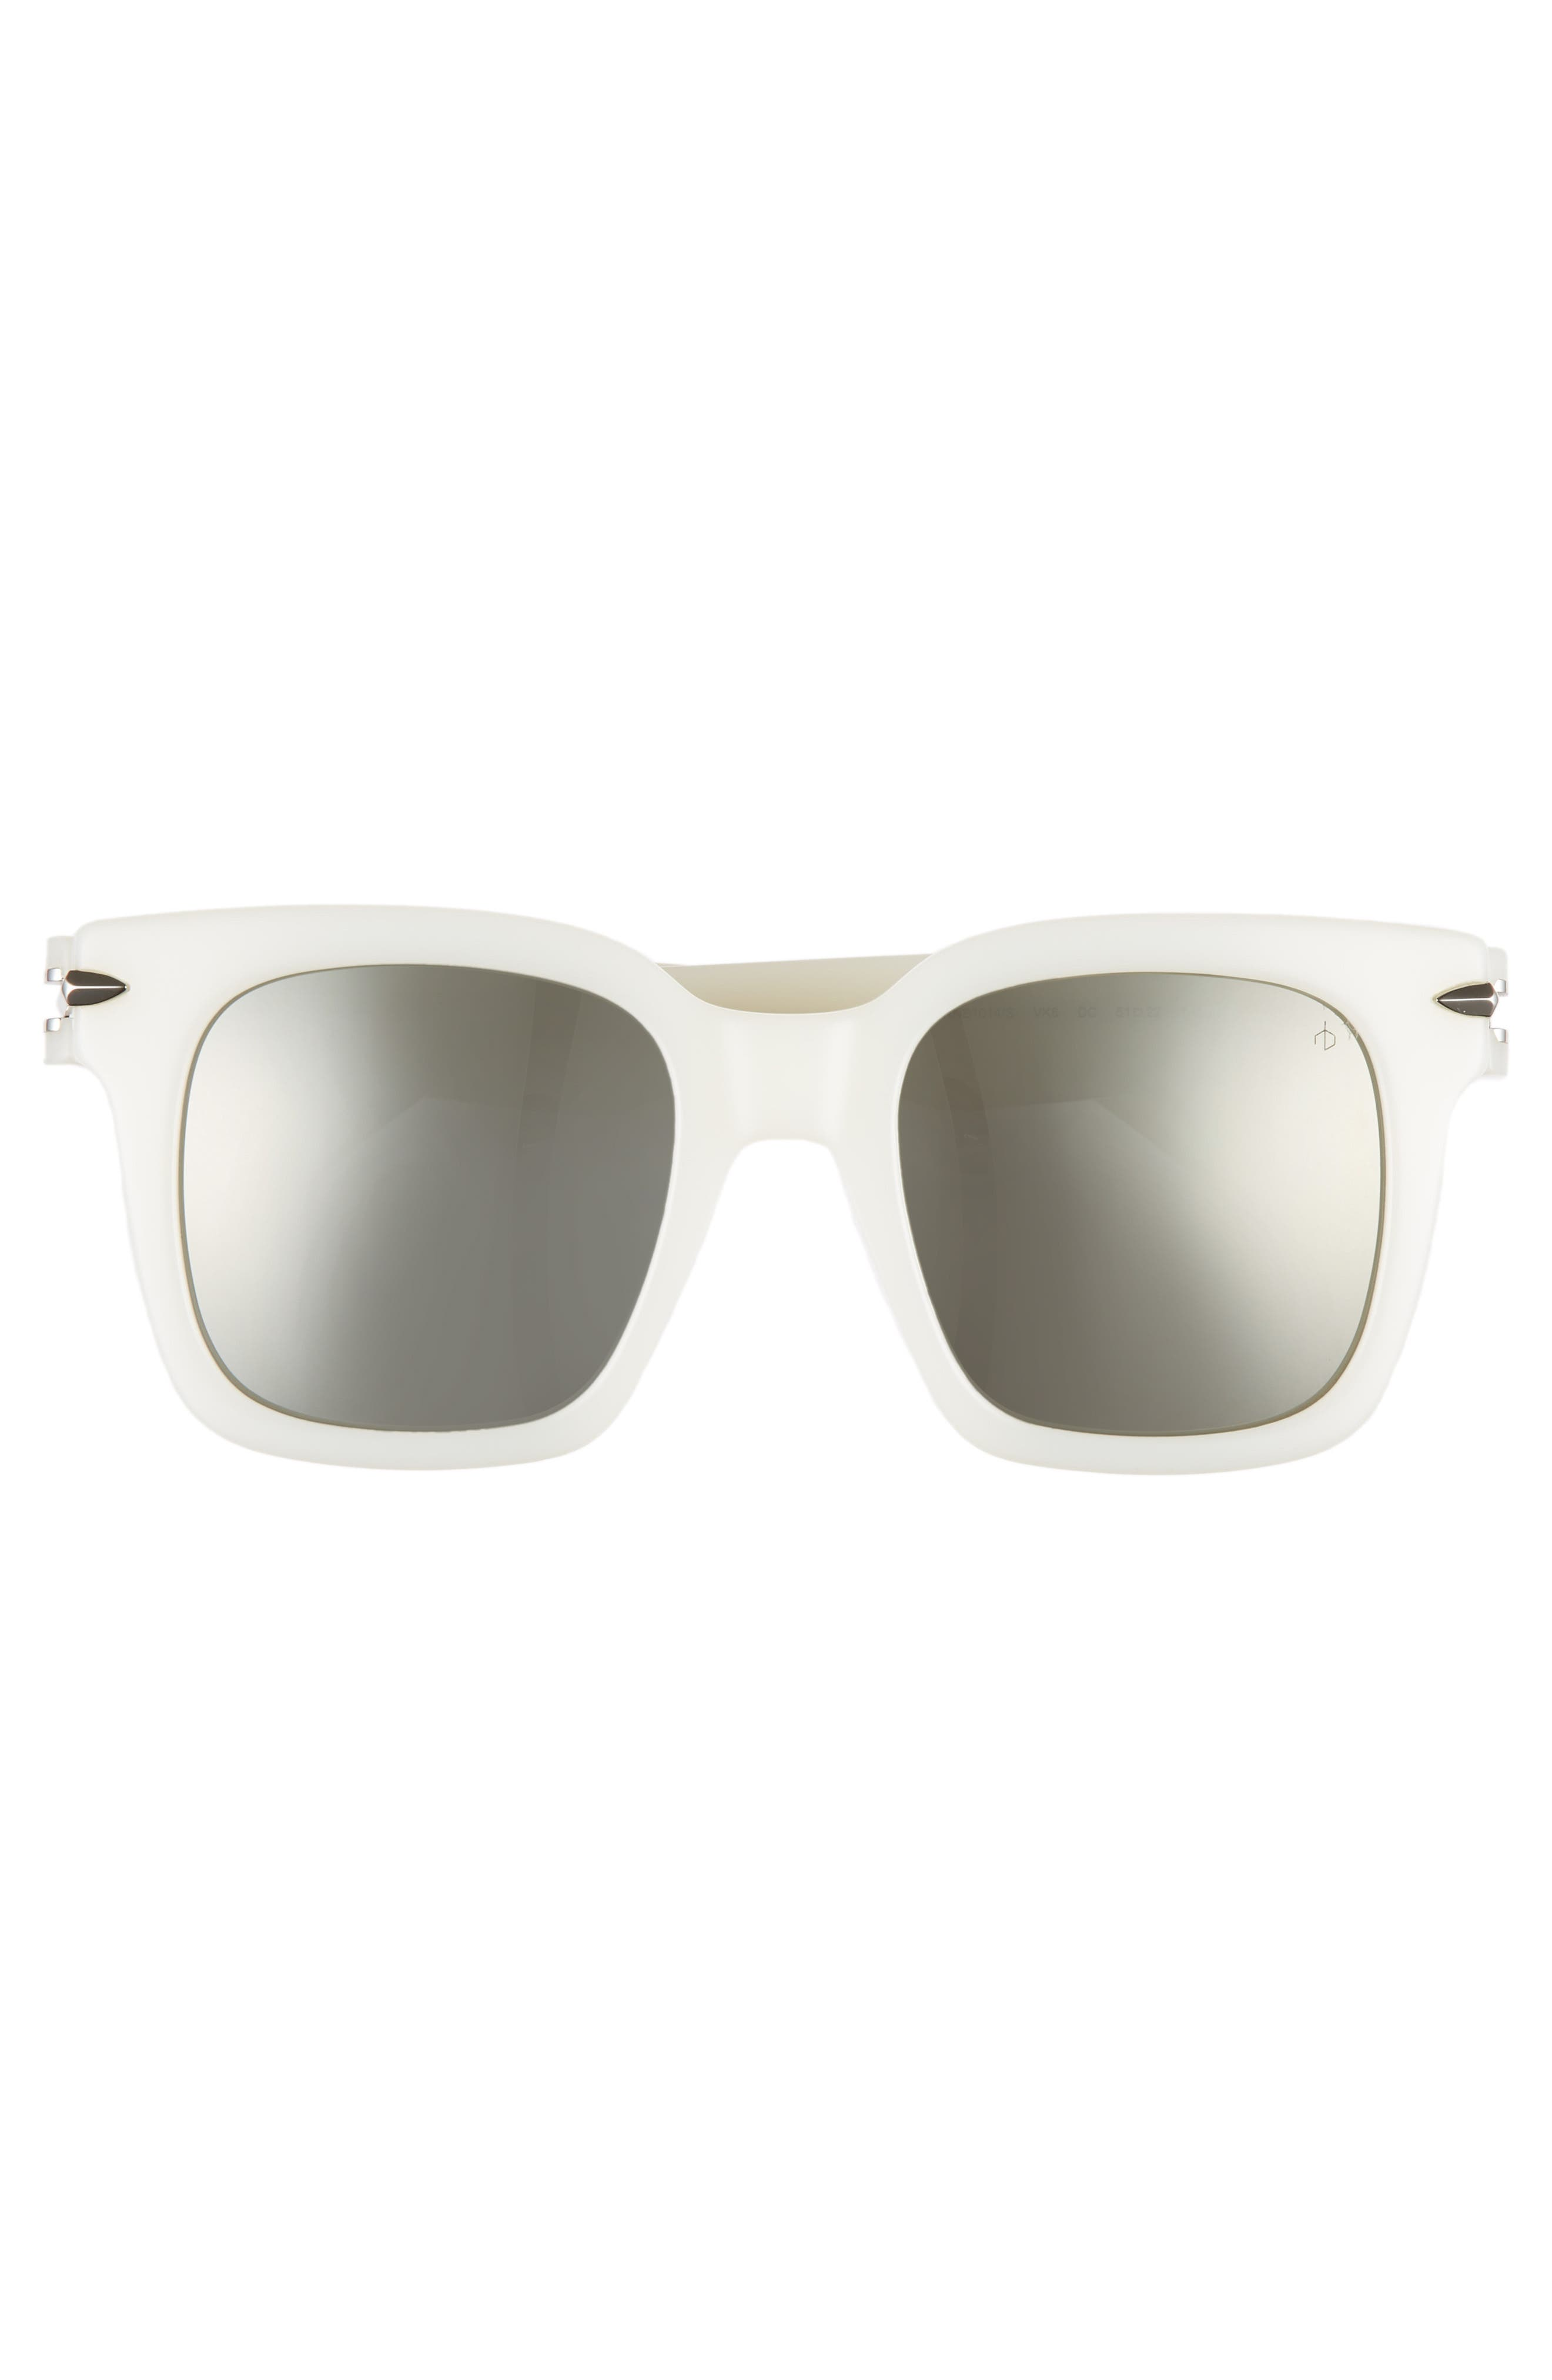 51mm Polarized Mirrored Square Sunglasses,                             Alternate thumbnail 3, color,                             WHITE